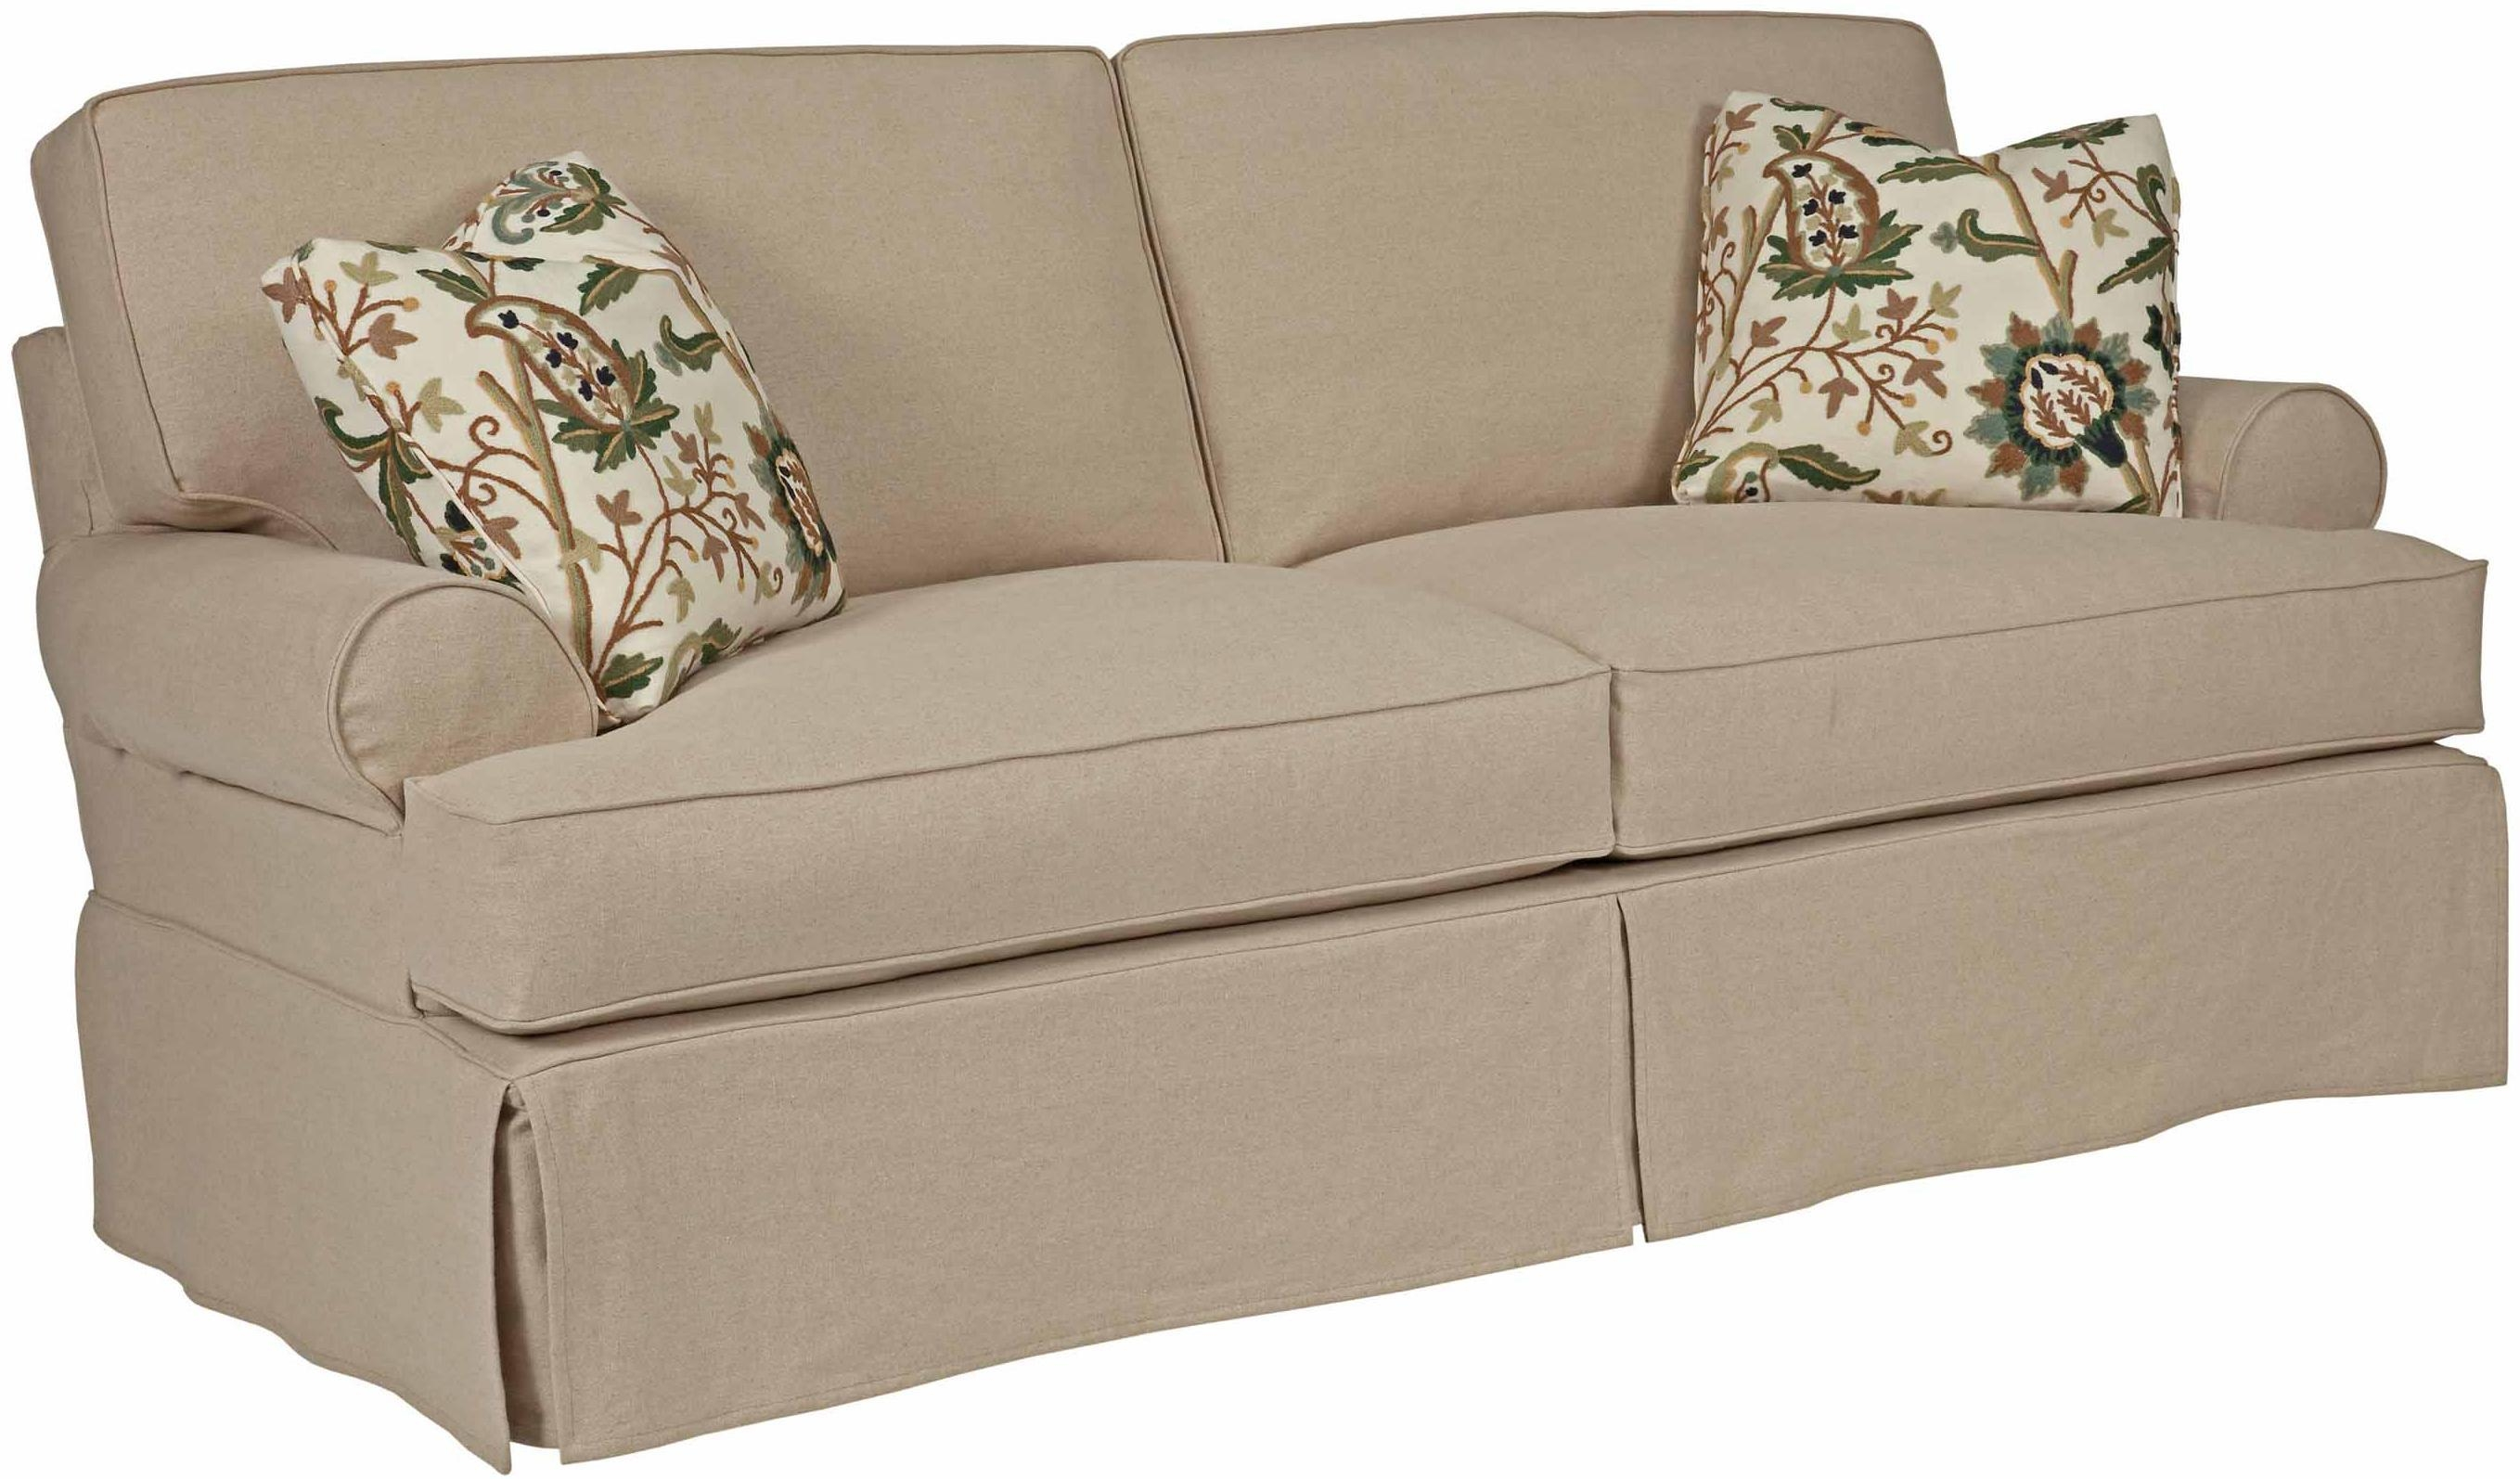 2 Piece T Cushion Sofa Slipcover – Sofas Throughout 2 Piece Sofa Covers (Image 3 of 27)